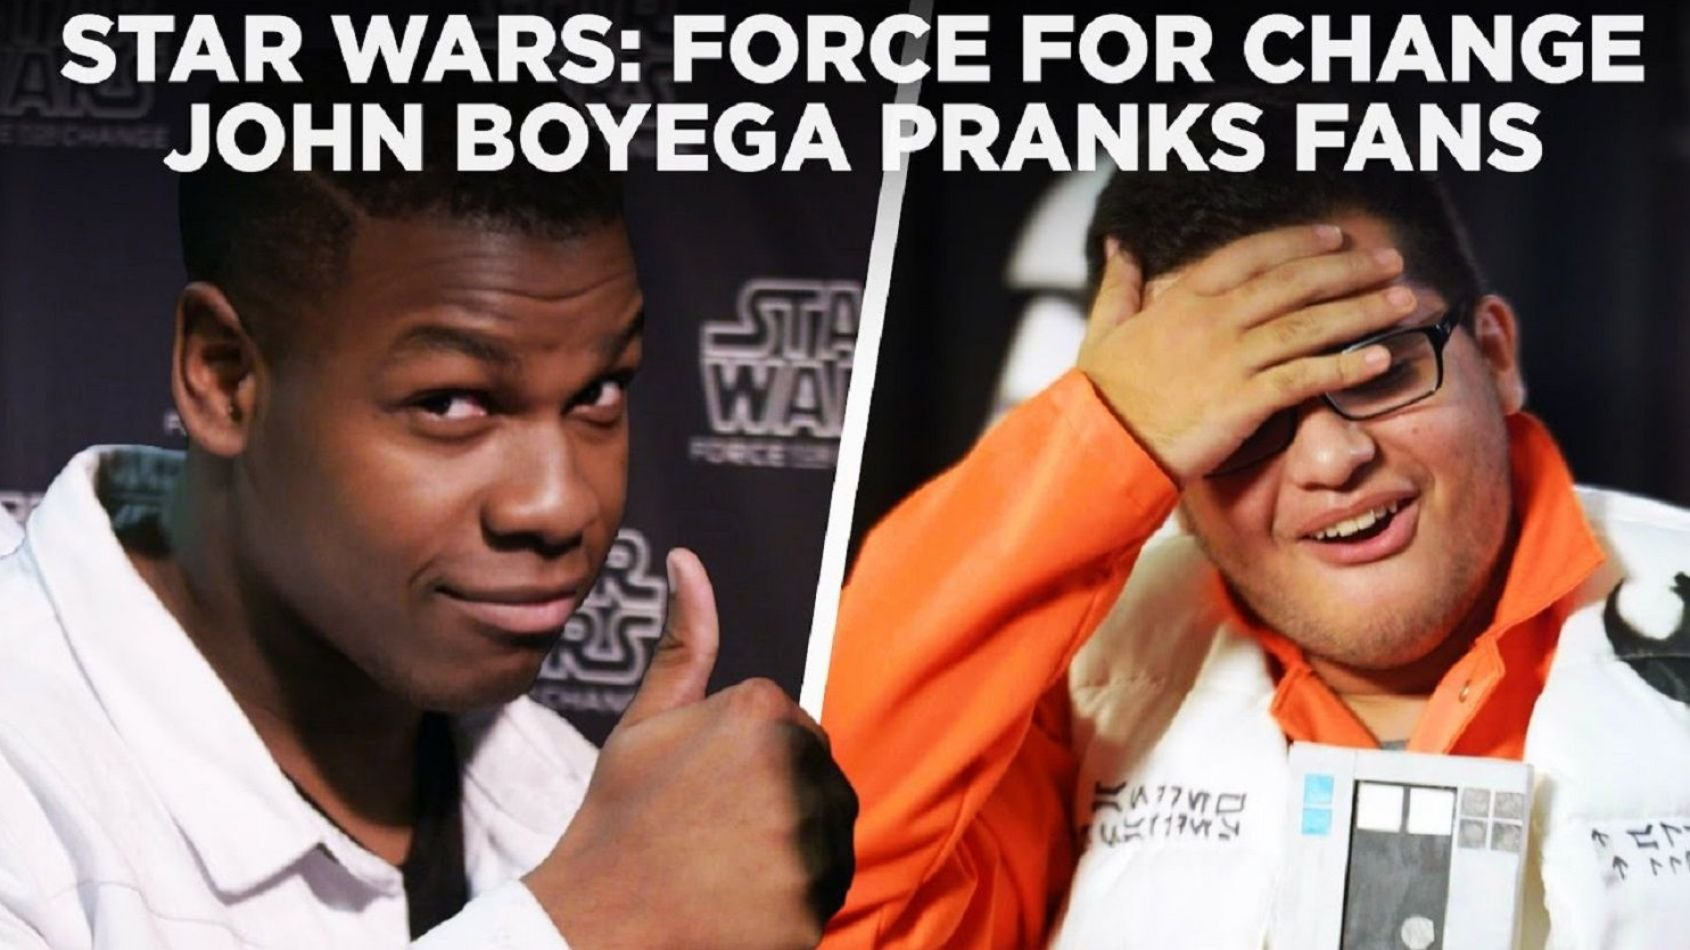 Celebration:surprise de John Boyega aux fans pour Force for Change